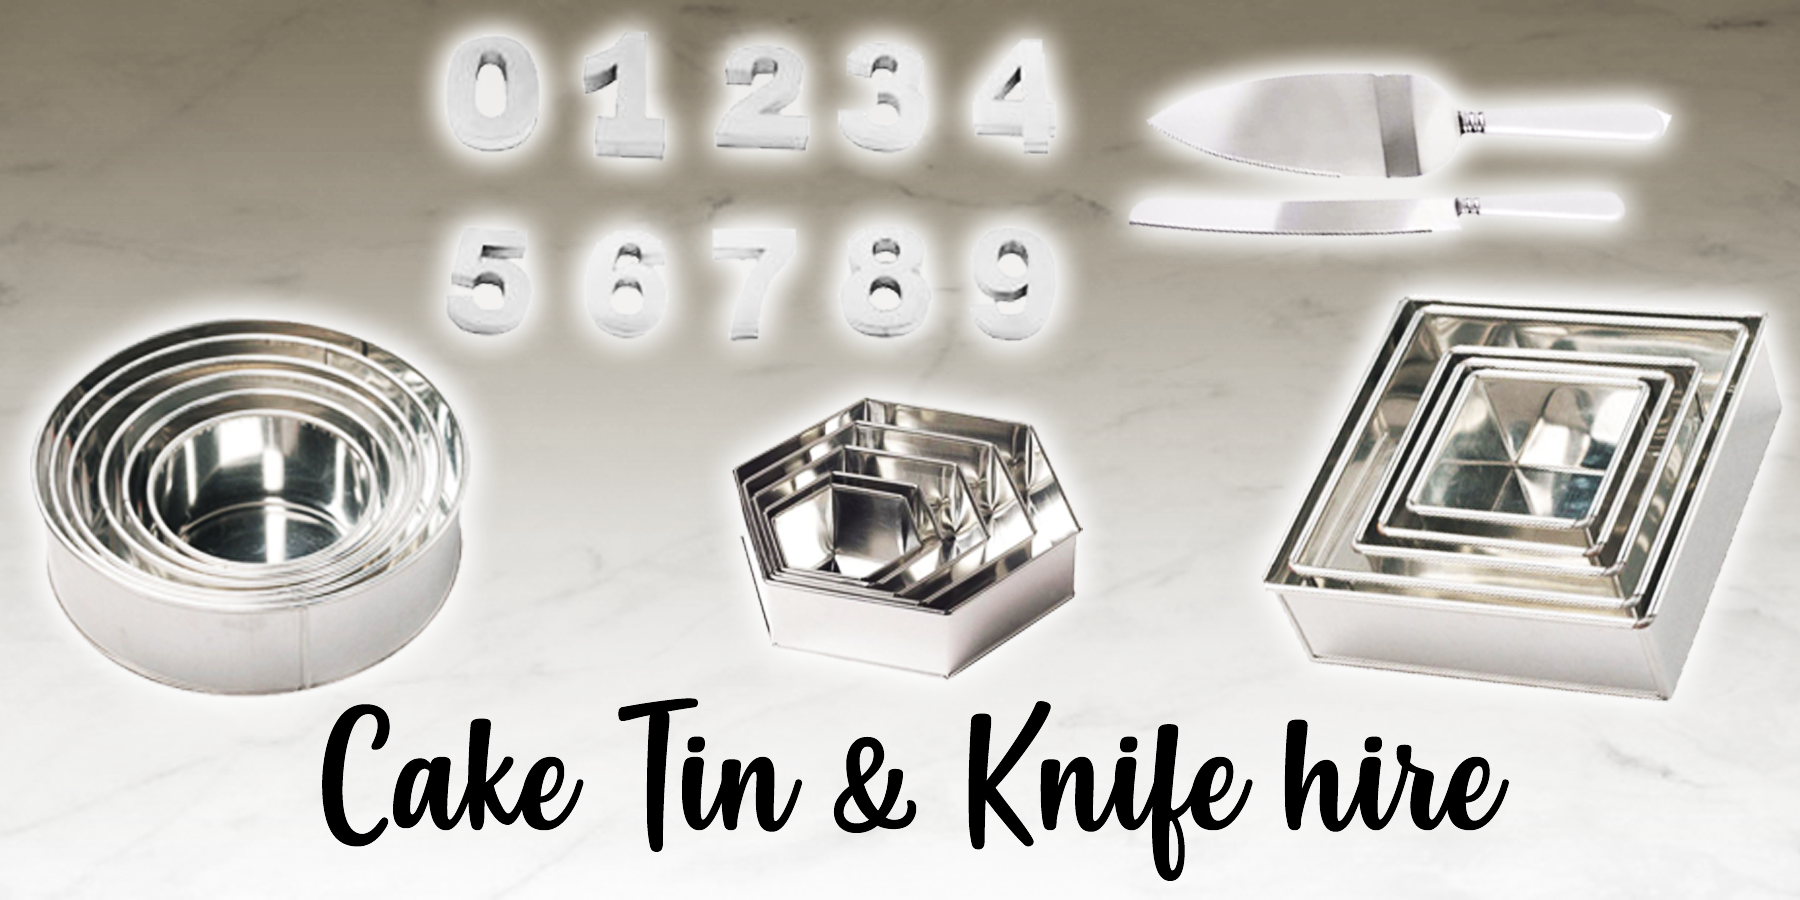 Cake tin hire and knife hire available in our Braintree shop